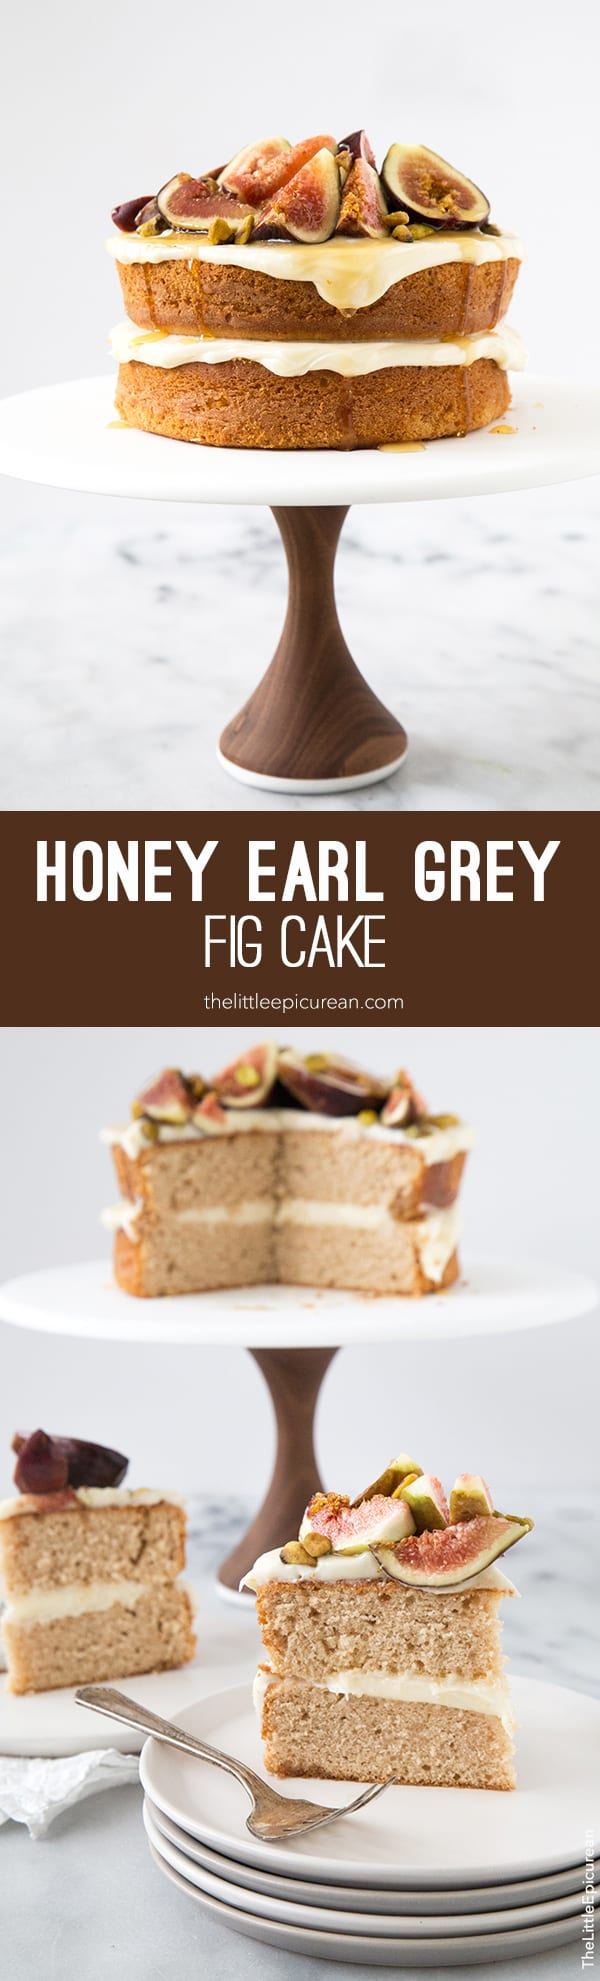 Honey Earl Grey Fig Cake- The Little Epicurean